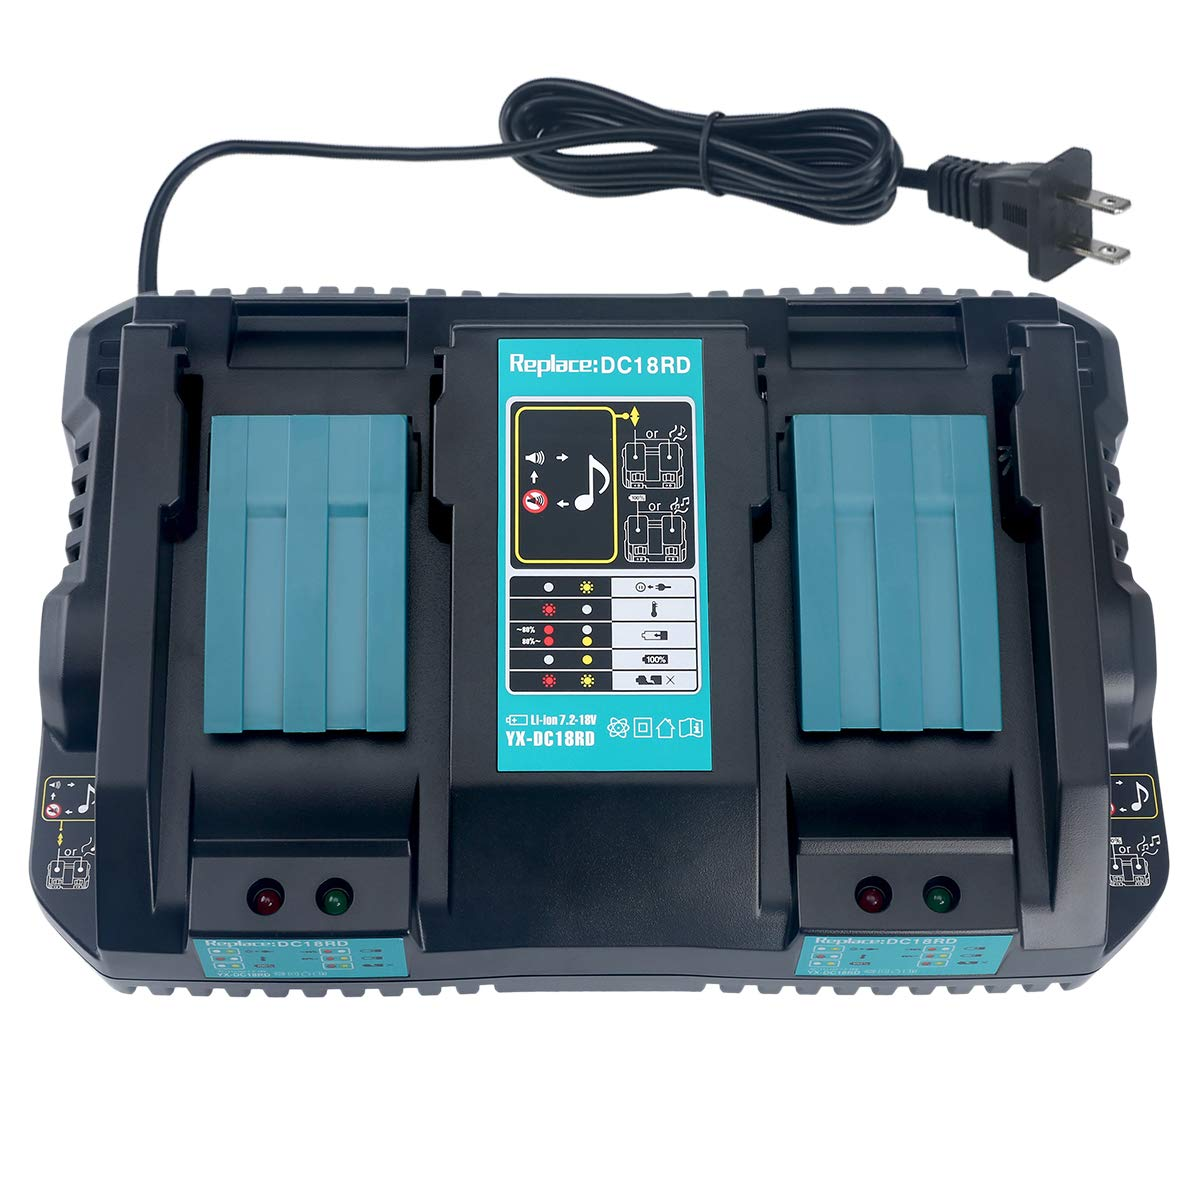 Lasica Cordless Tool Battery Charger Replacement Makita 18V Battery Charger DC18RD for Makita 18V Battery LXT BL1830 BL1840 BL1860 BL1815 BL1430 BL1450 BL1440 BL1850 Makita 14.4V 18V LXT Charger